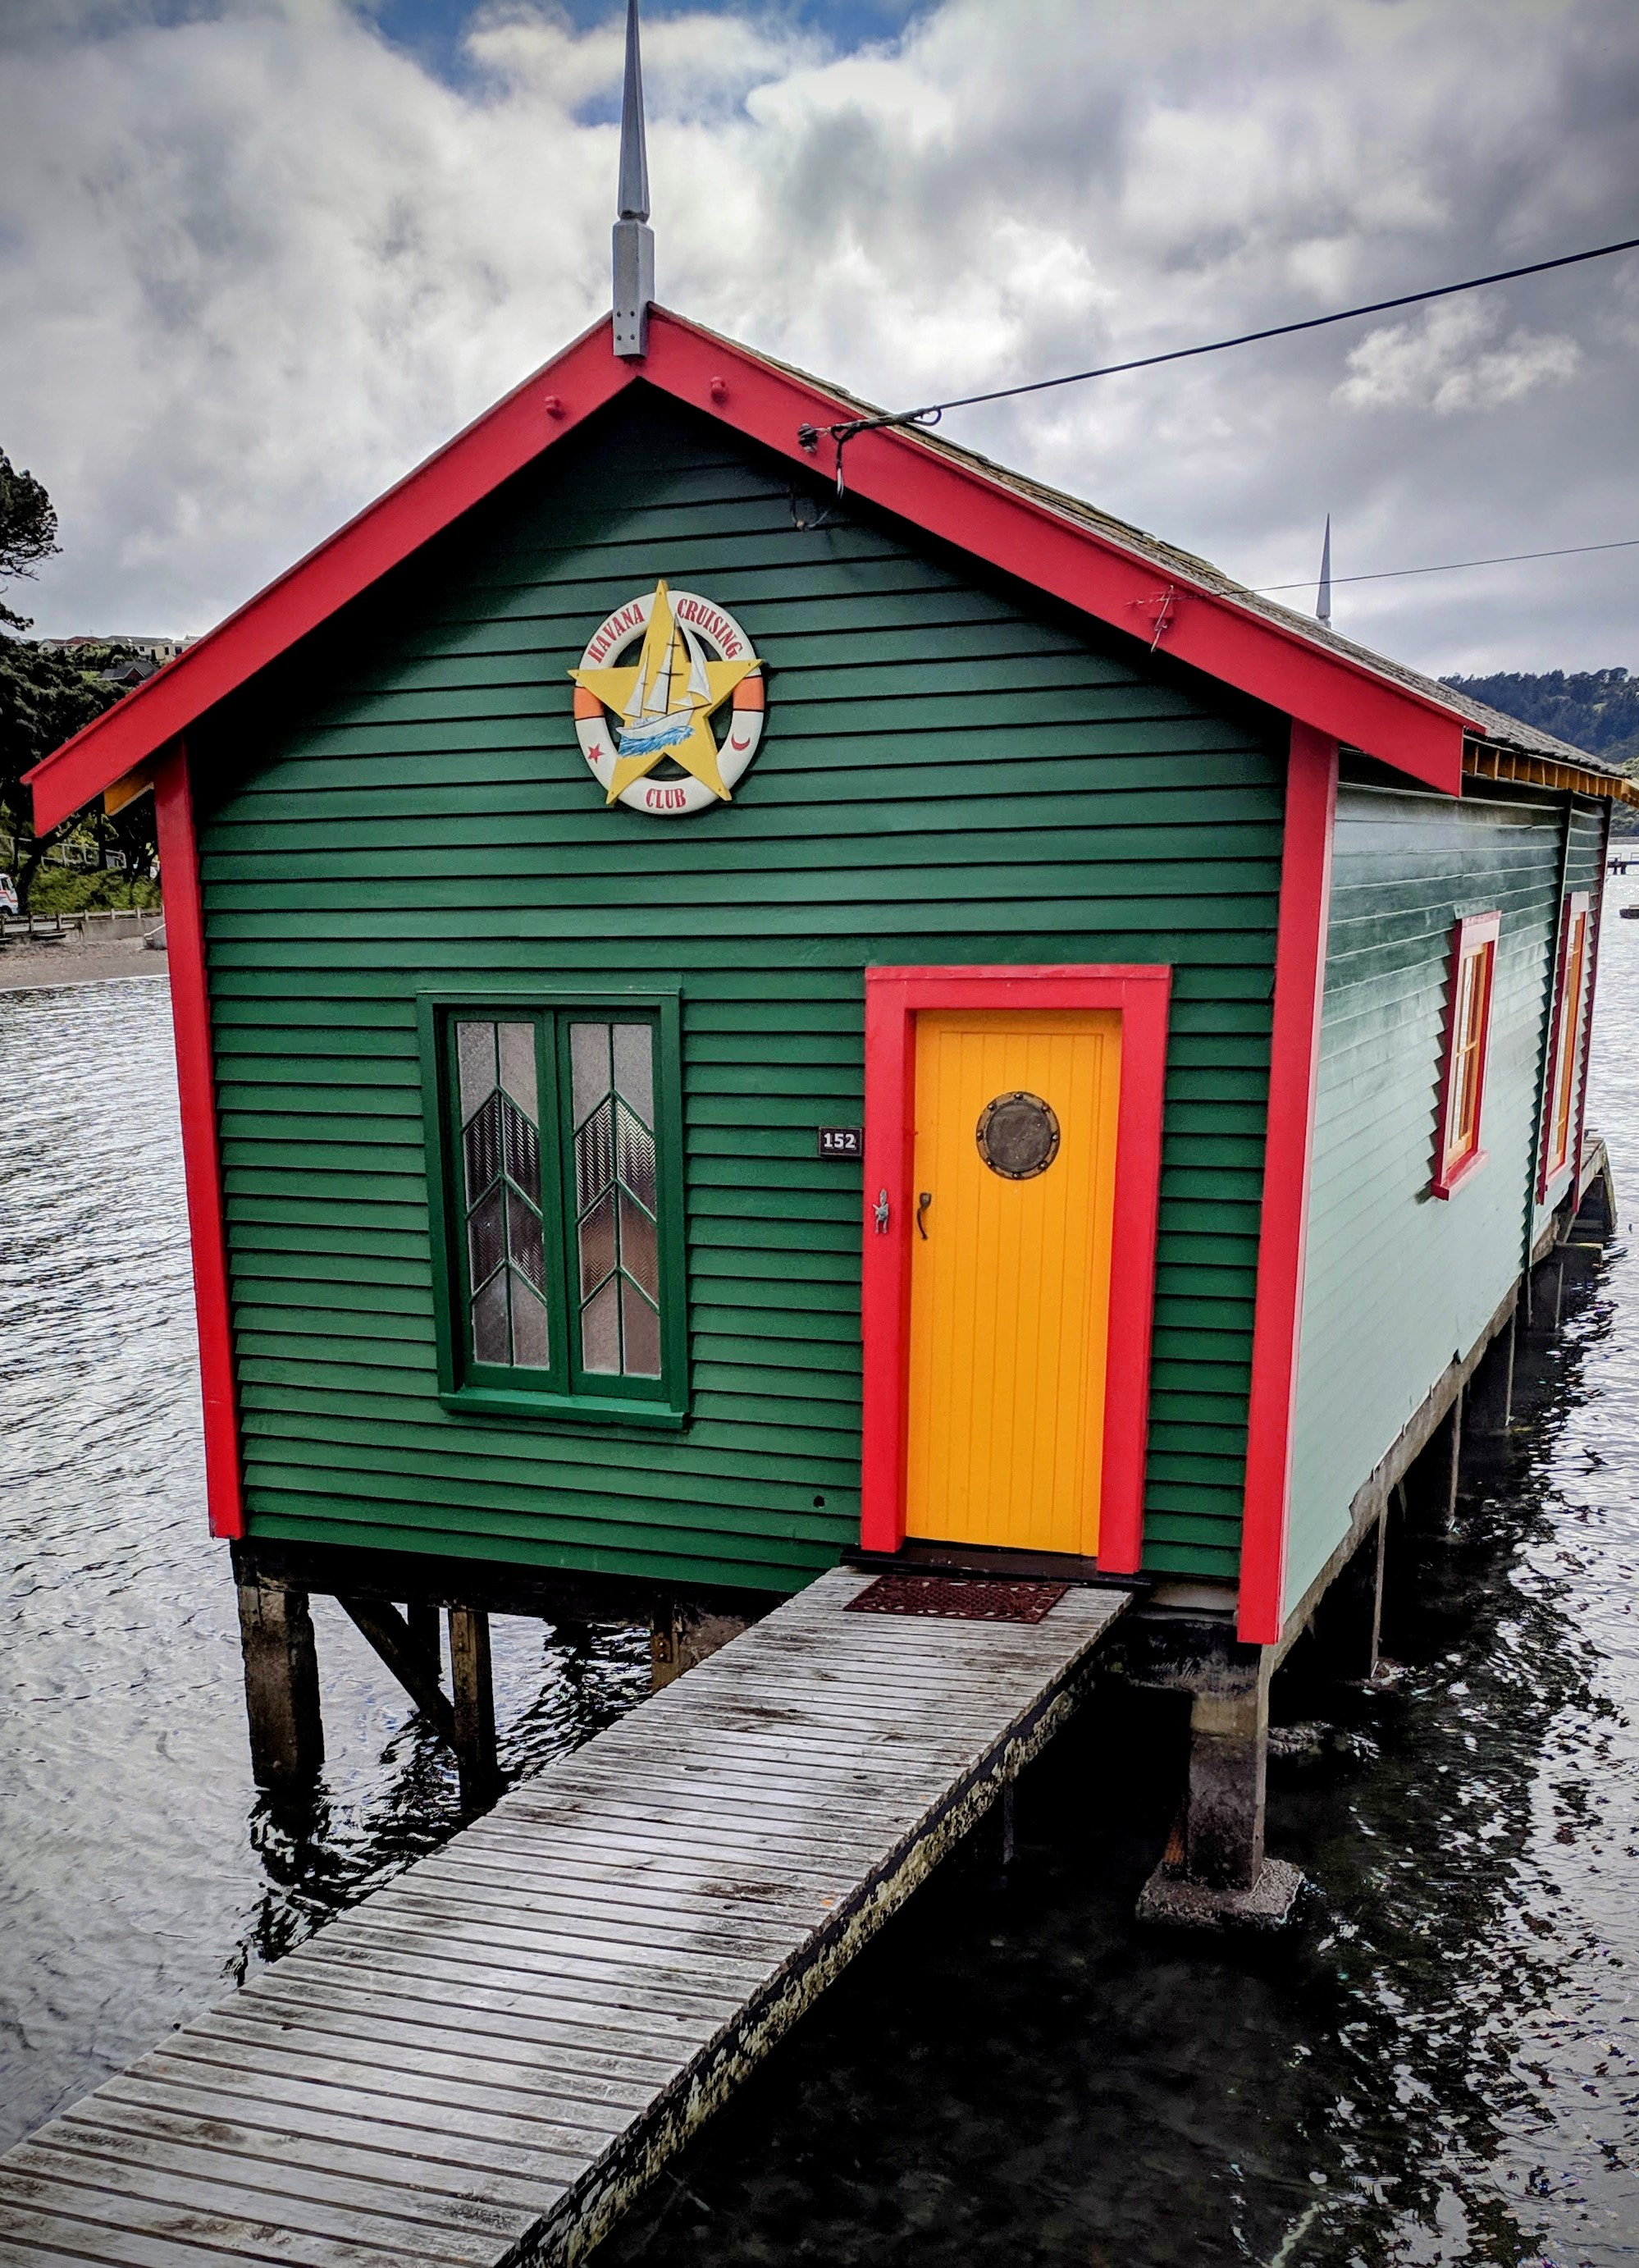 Coloured boatshed for Pirates